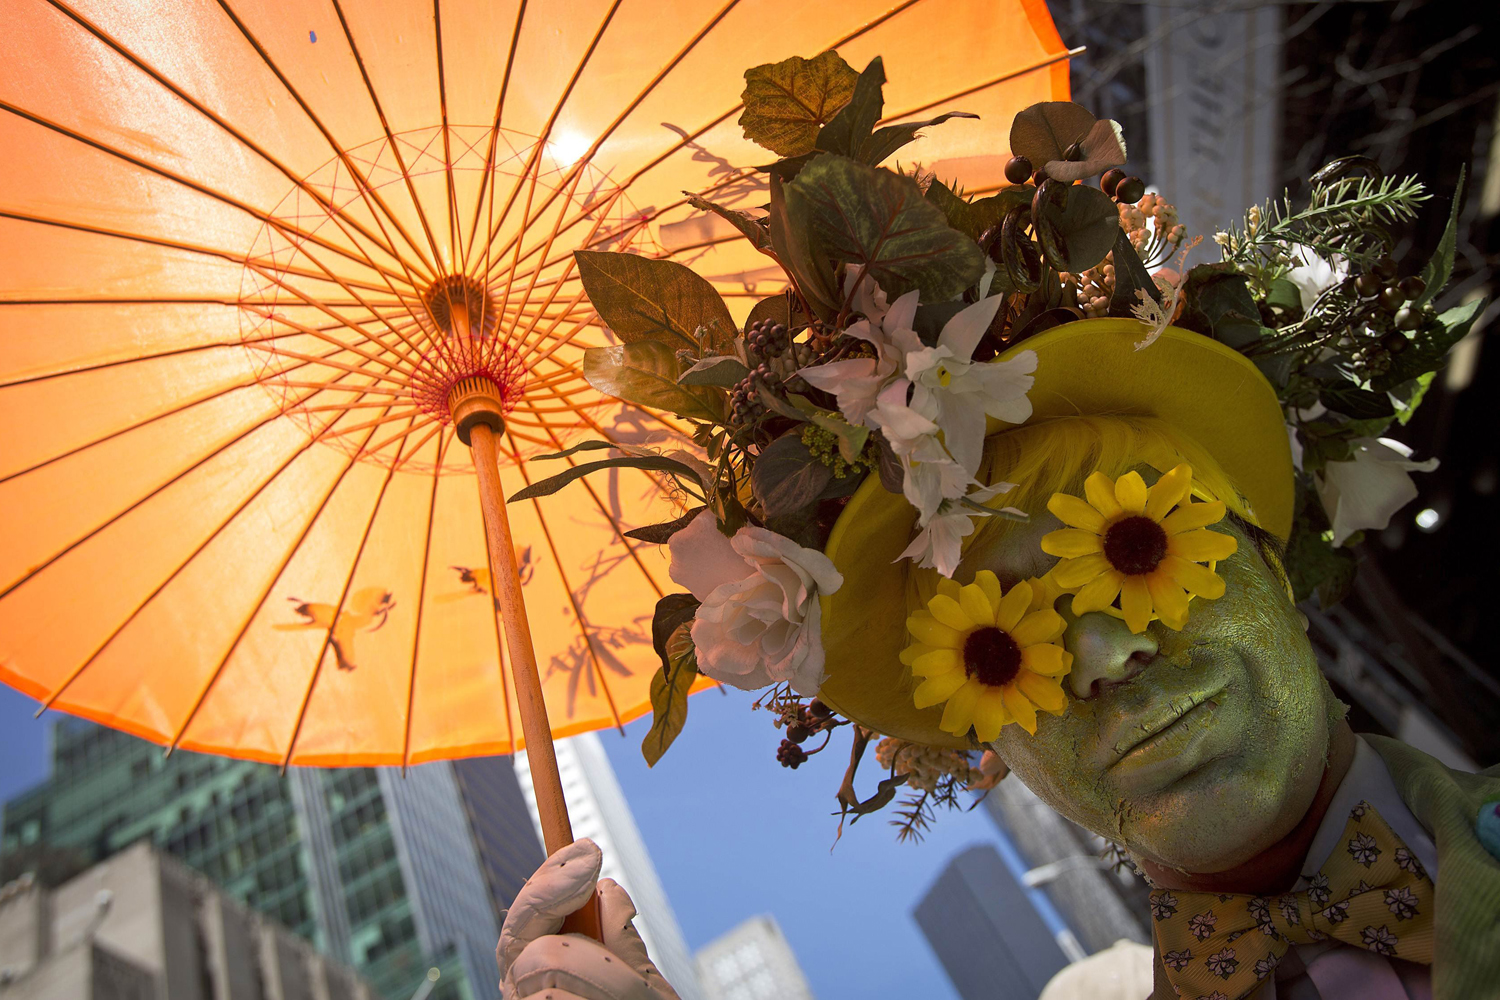 A participant dressed in costume holds an umbrella at the annual Easter Bonnet Parade in New York April 20, 2014.